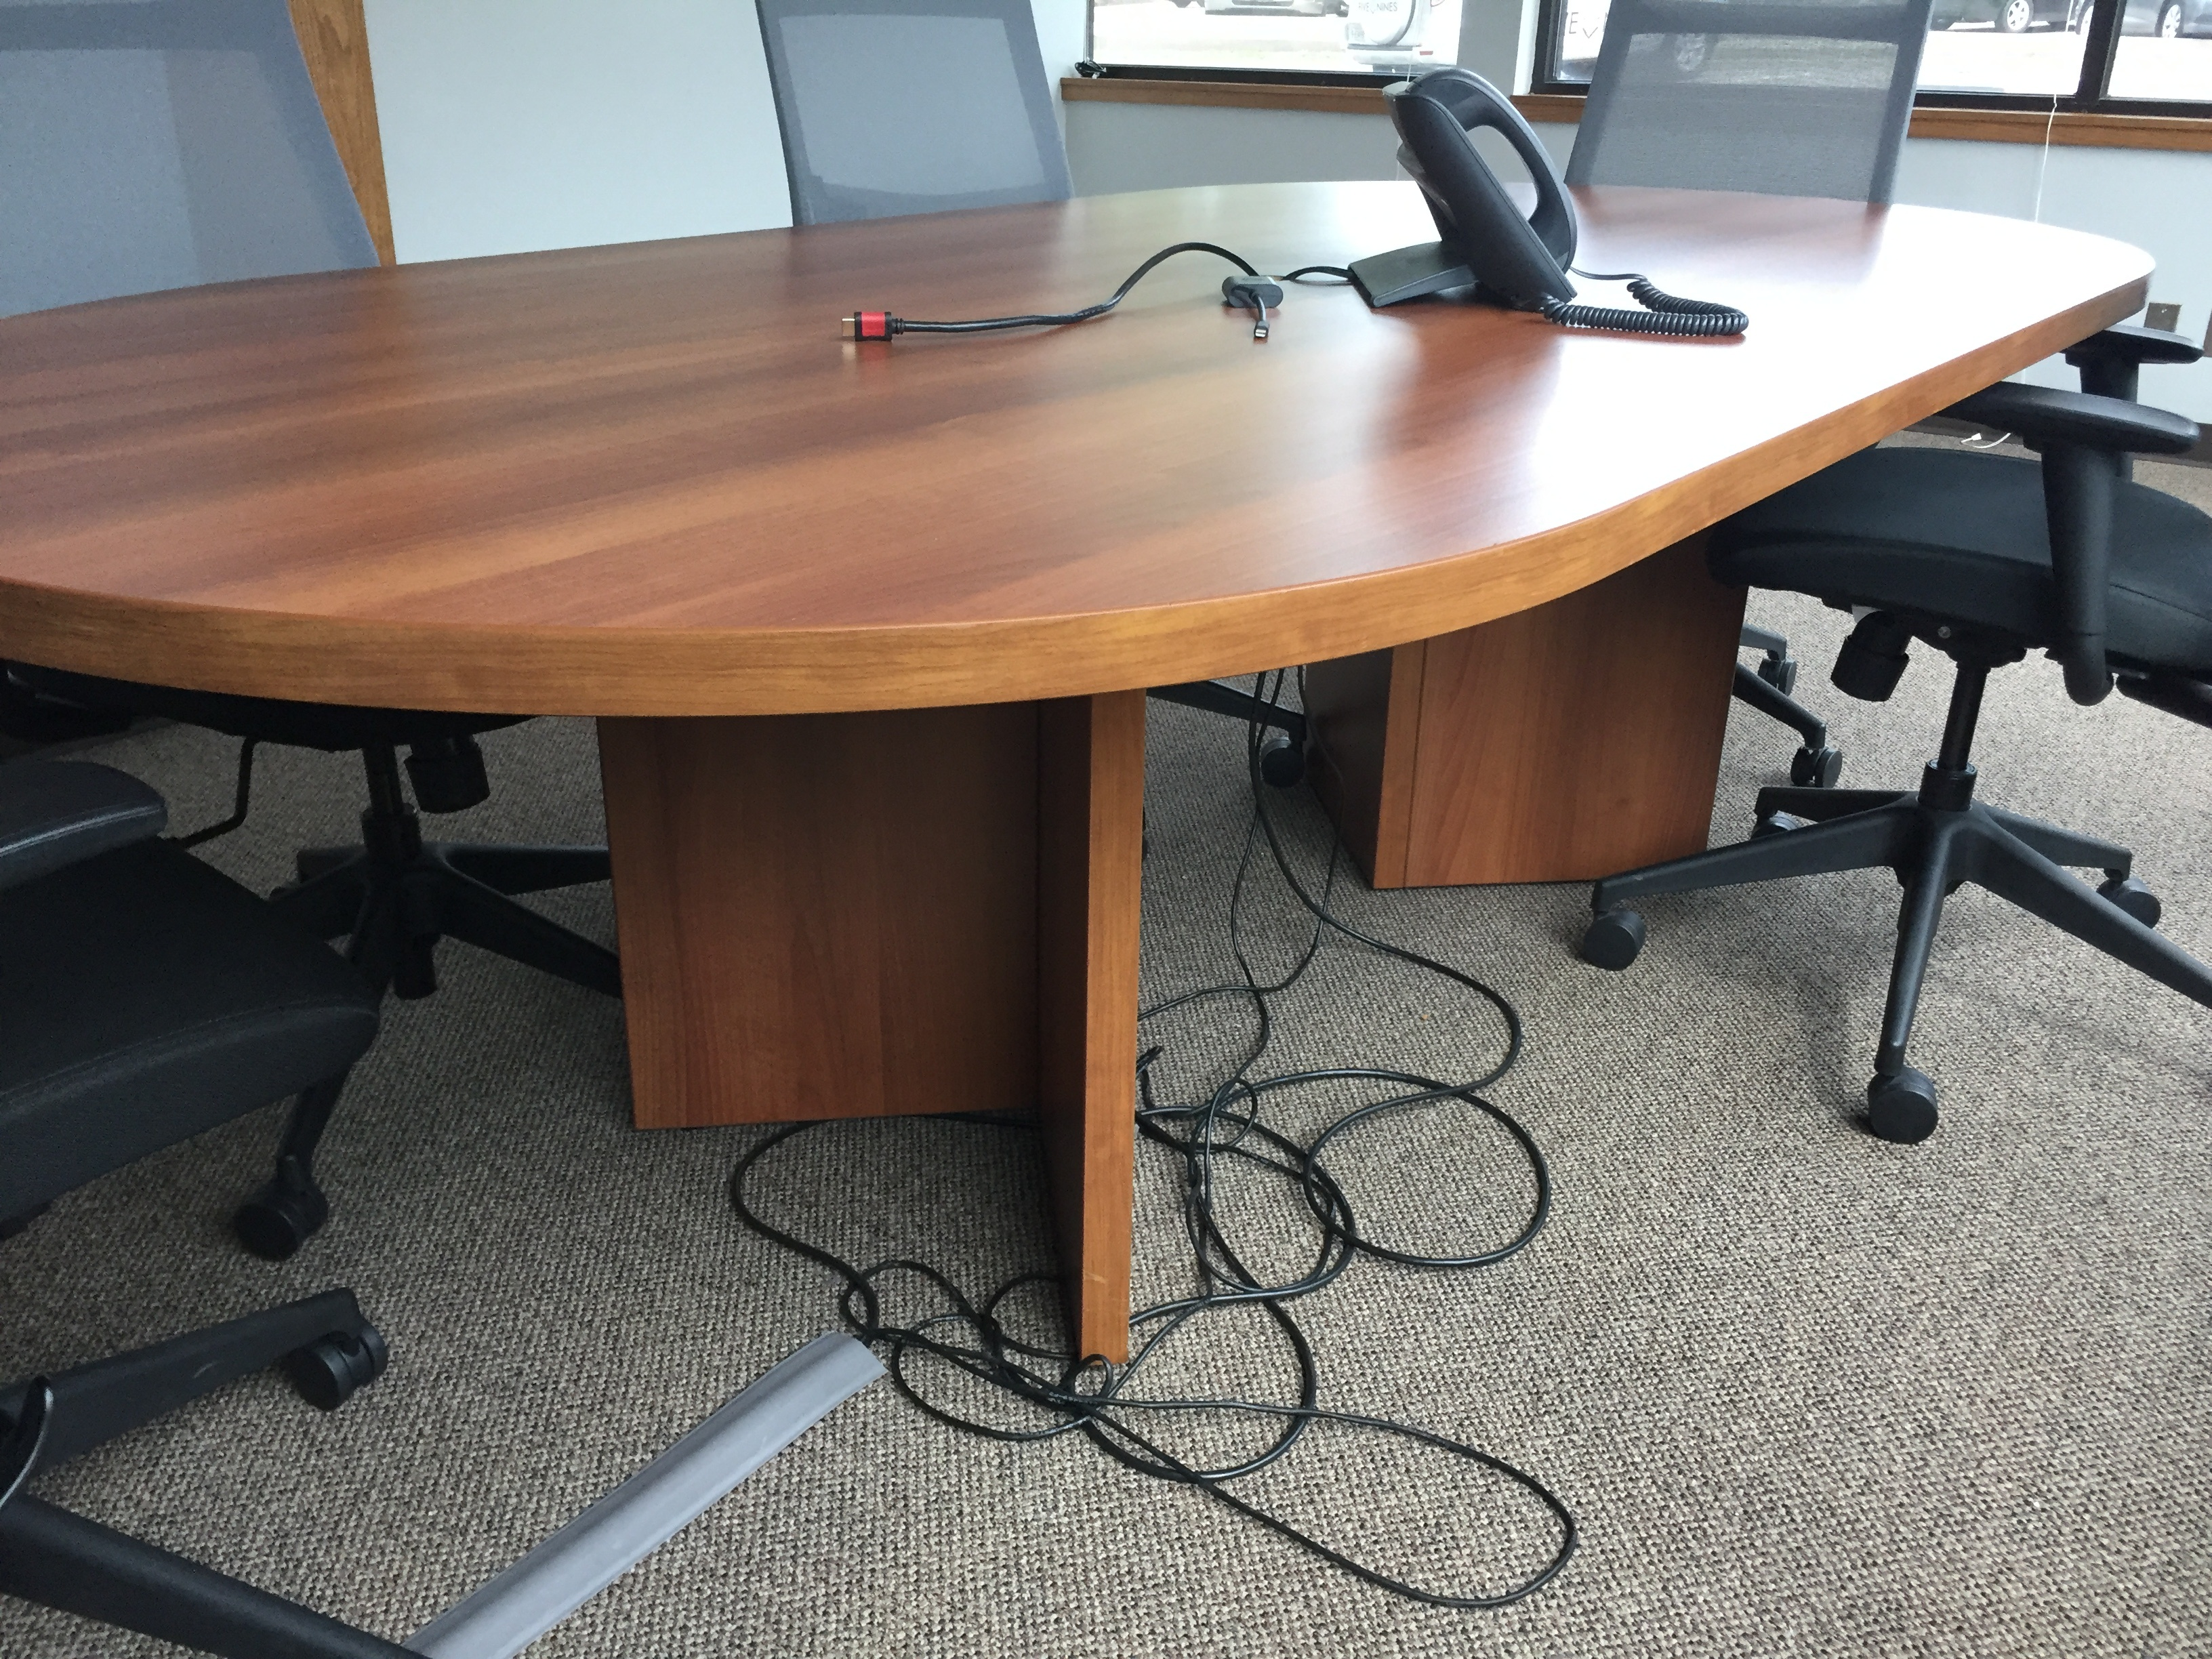 Conference_Room_Wires_.jpg